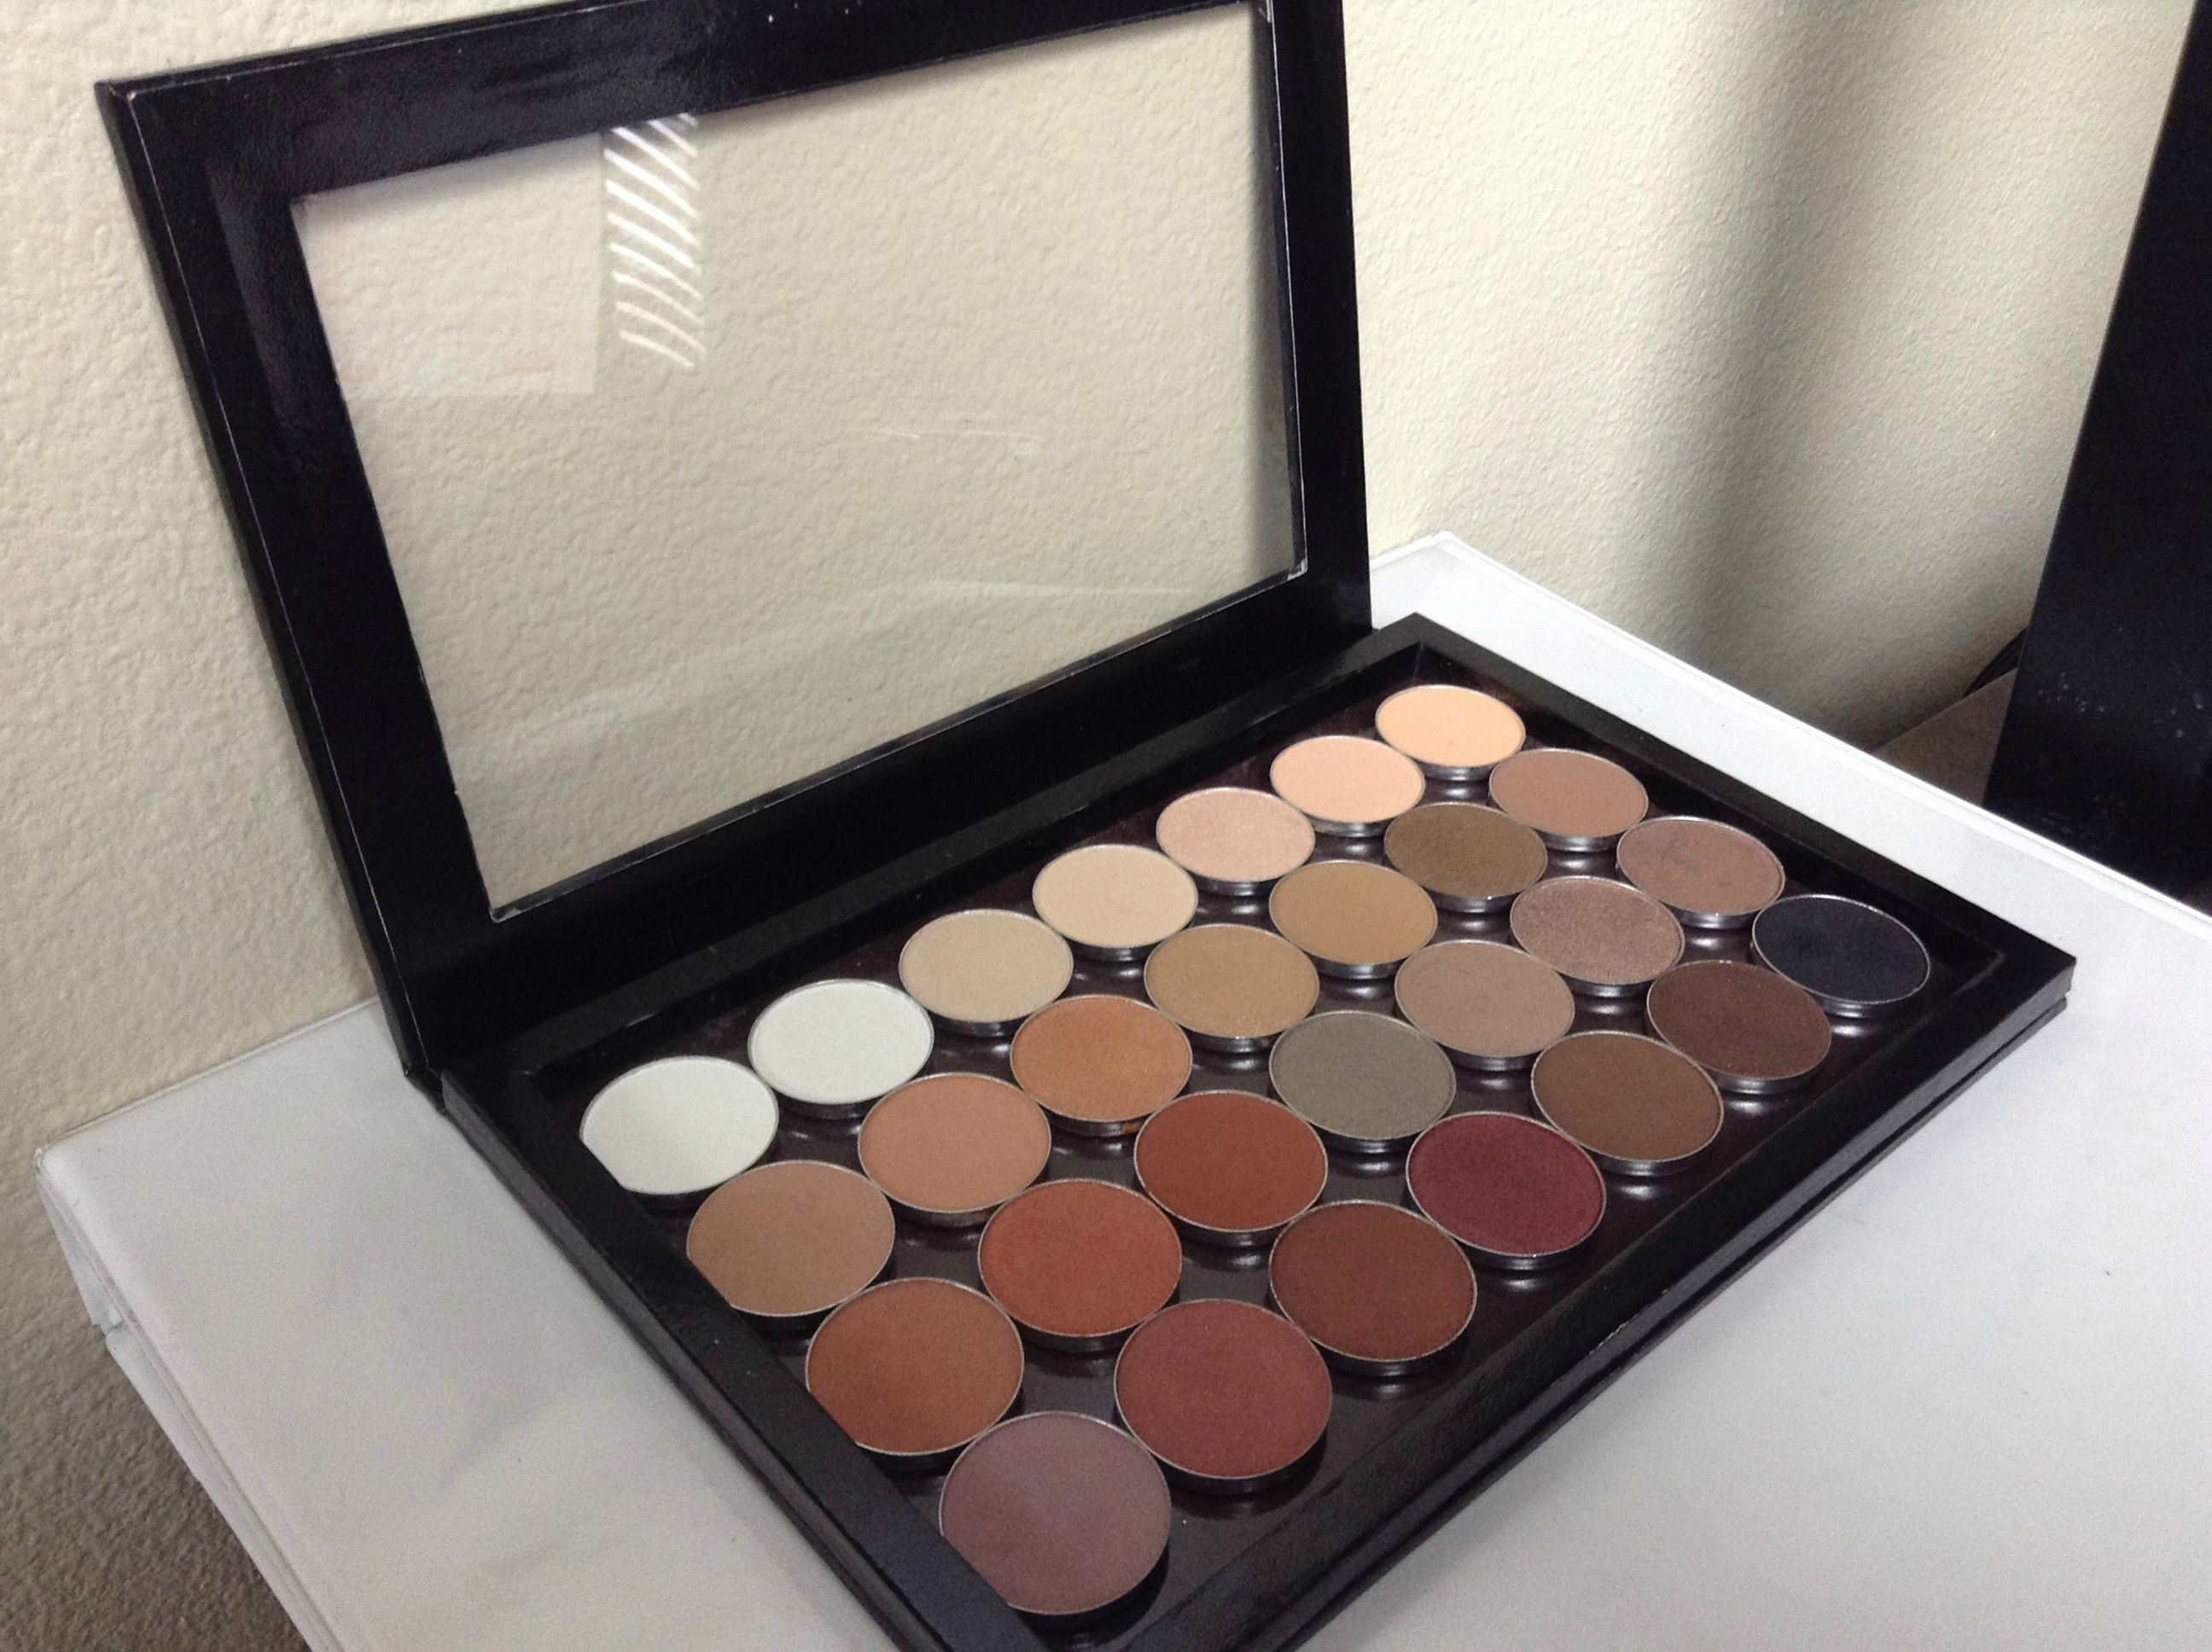 Makeup Geek Neutral Eyeshadow Palette Neutral eyeshadow